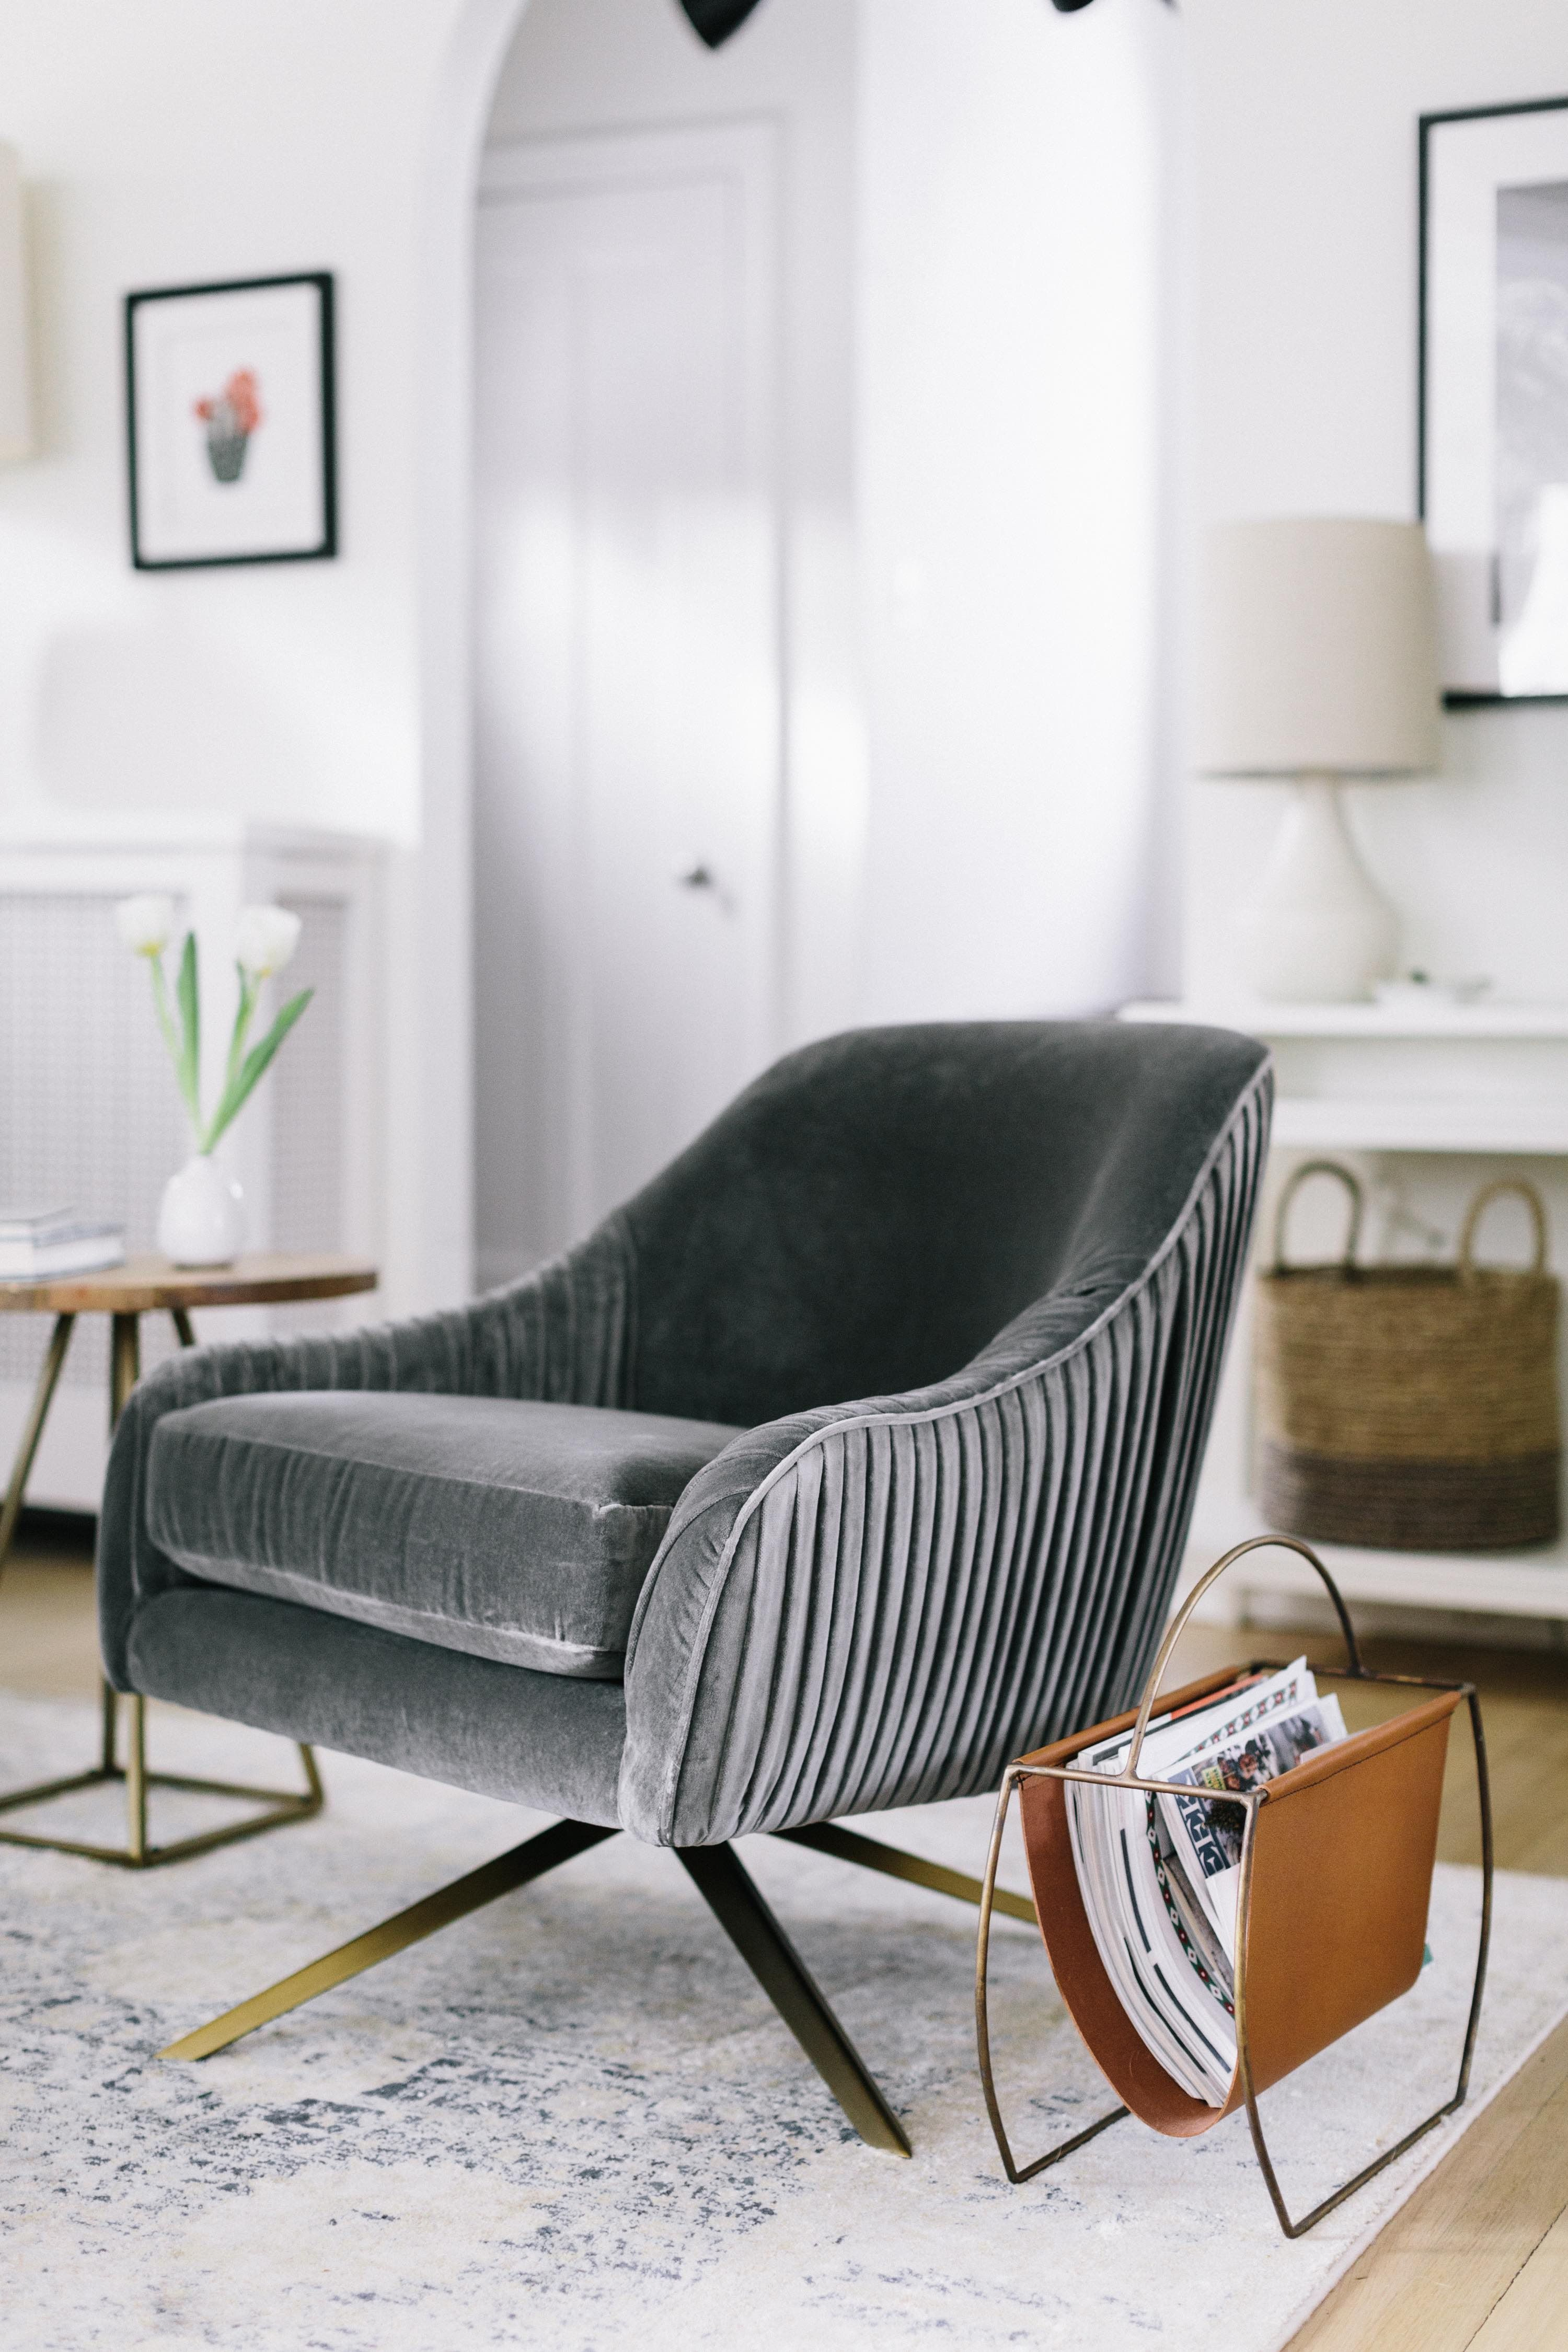 West Elm Living Room It Takes Two Or A West Elm Roar Rabbit Giveaway Wit